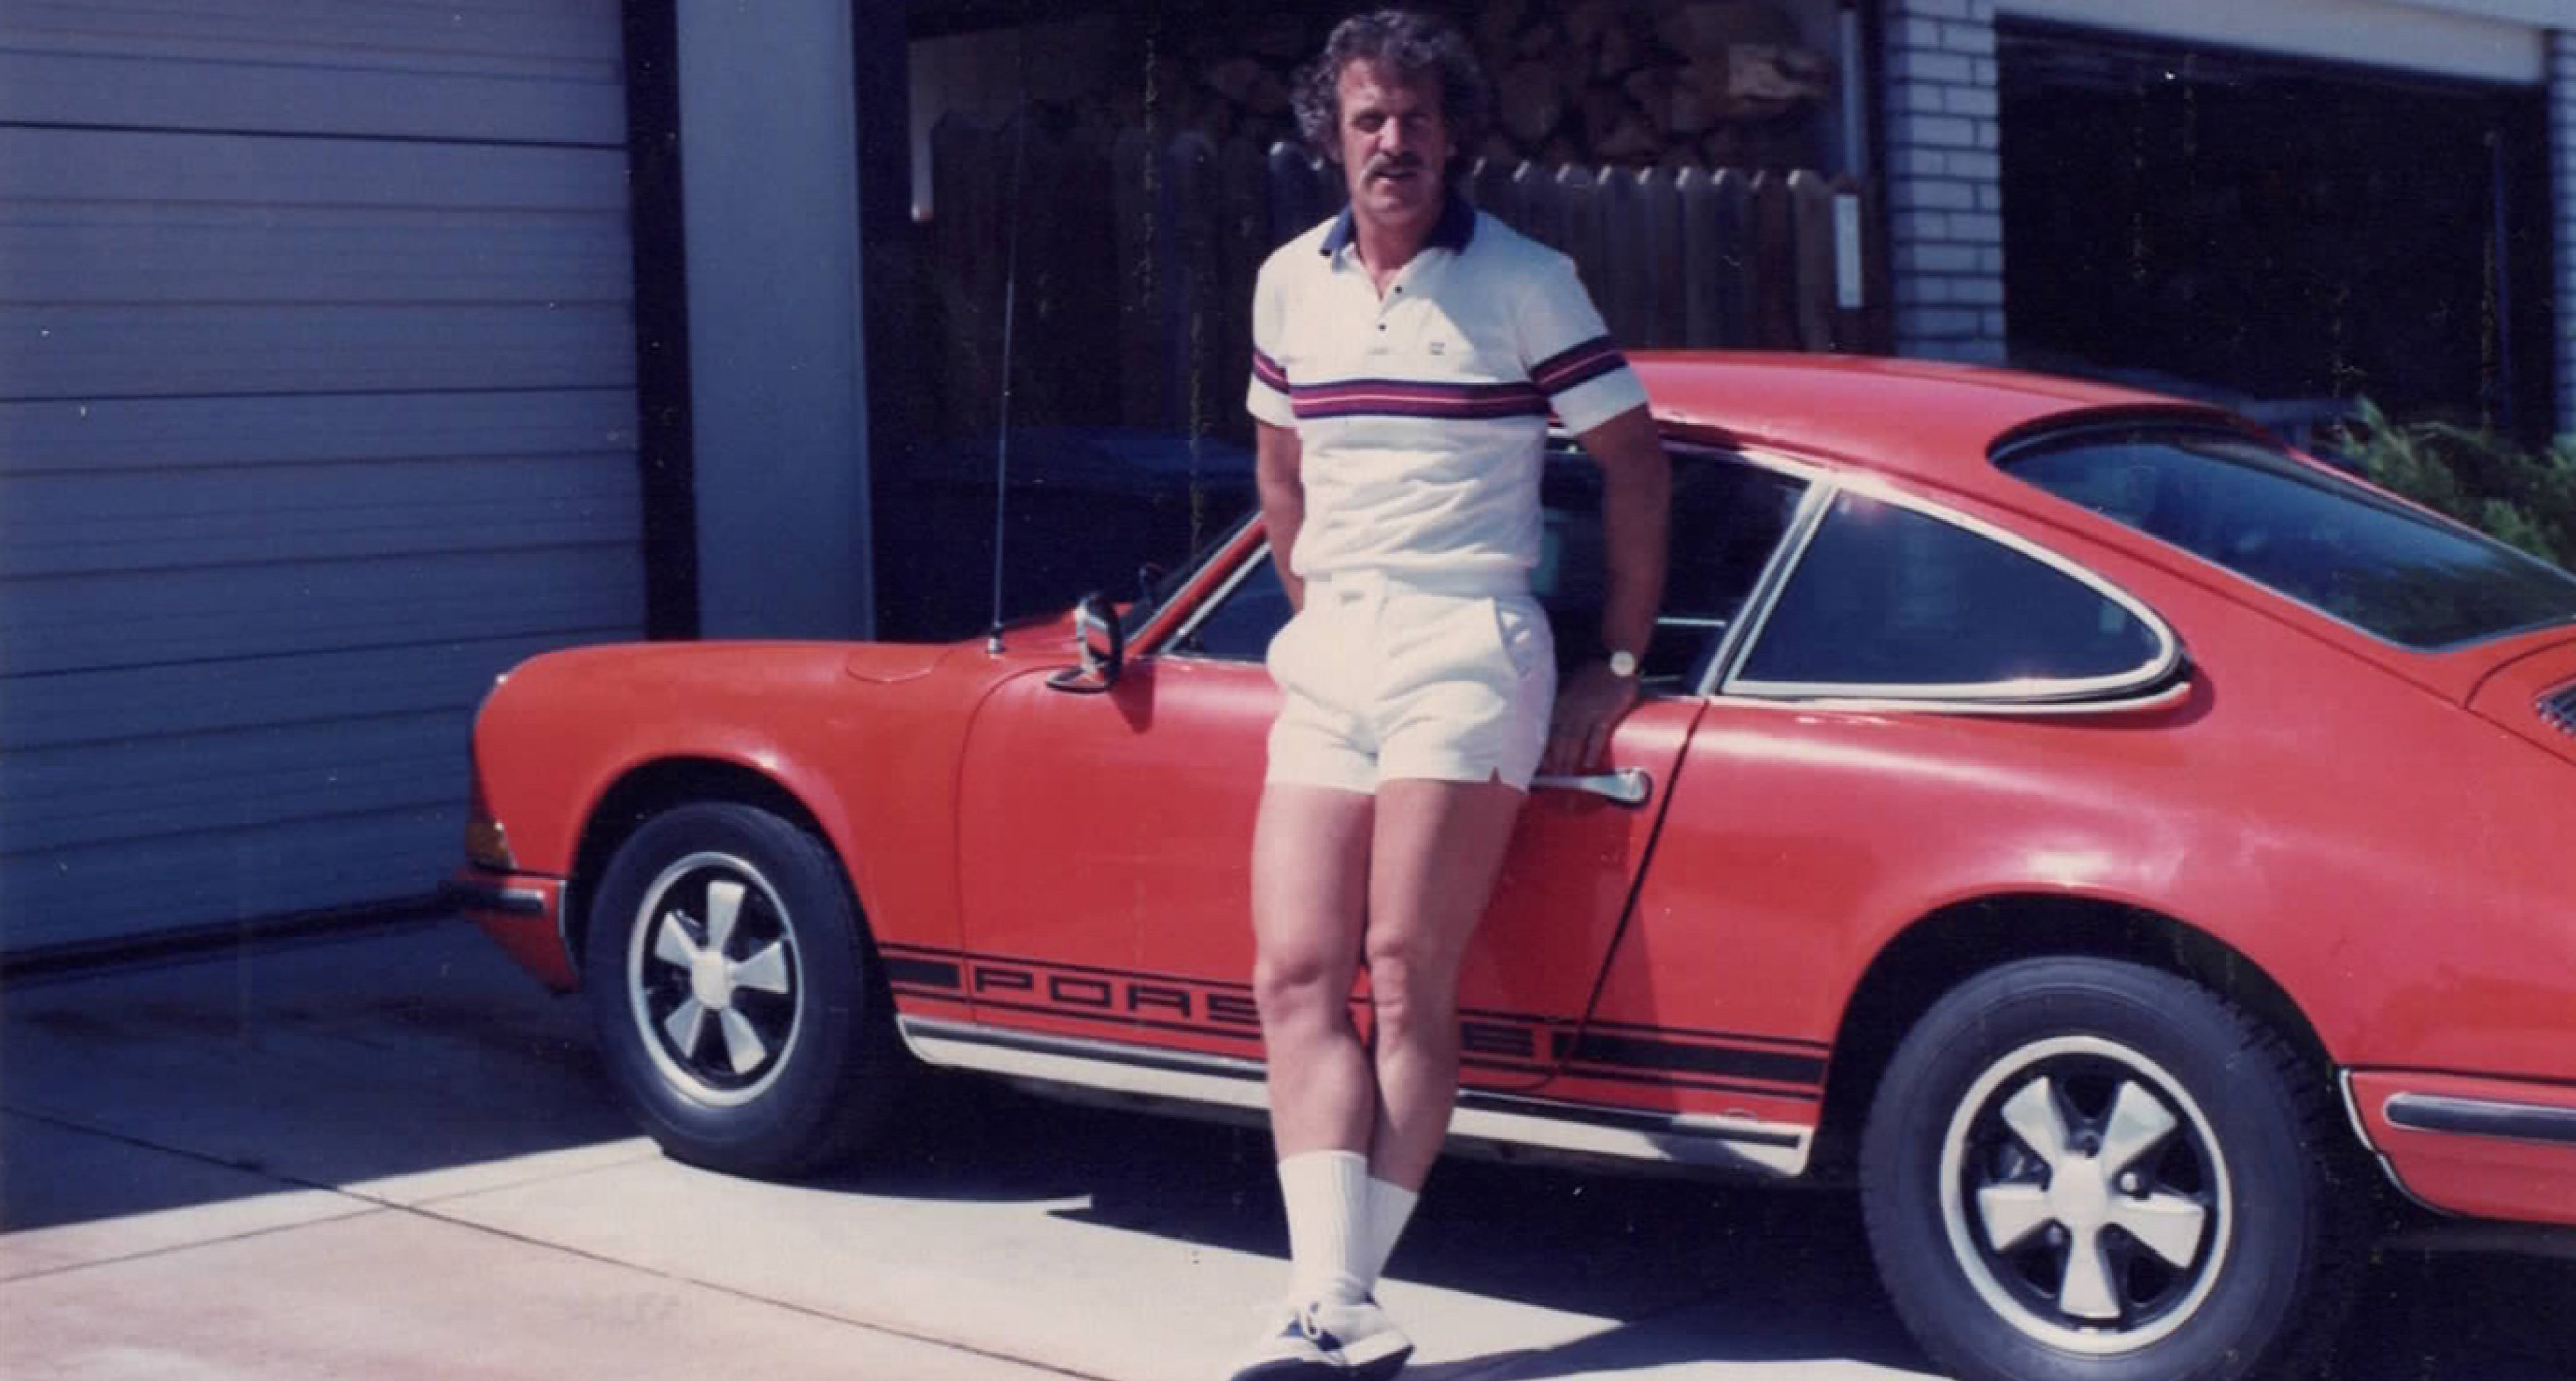 The 'porno Porsche' with its second owner